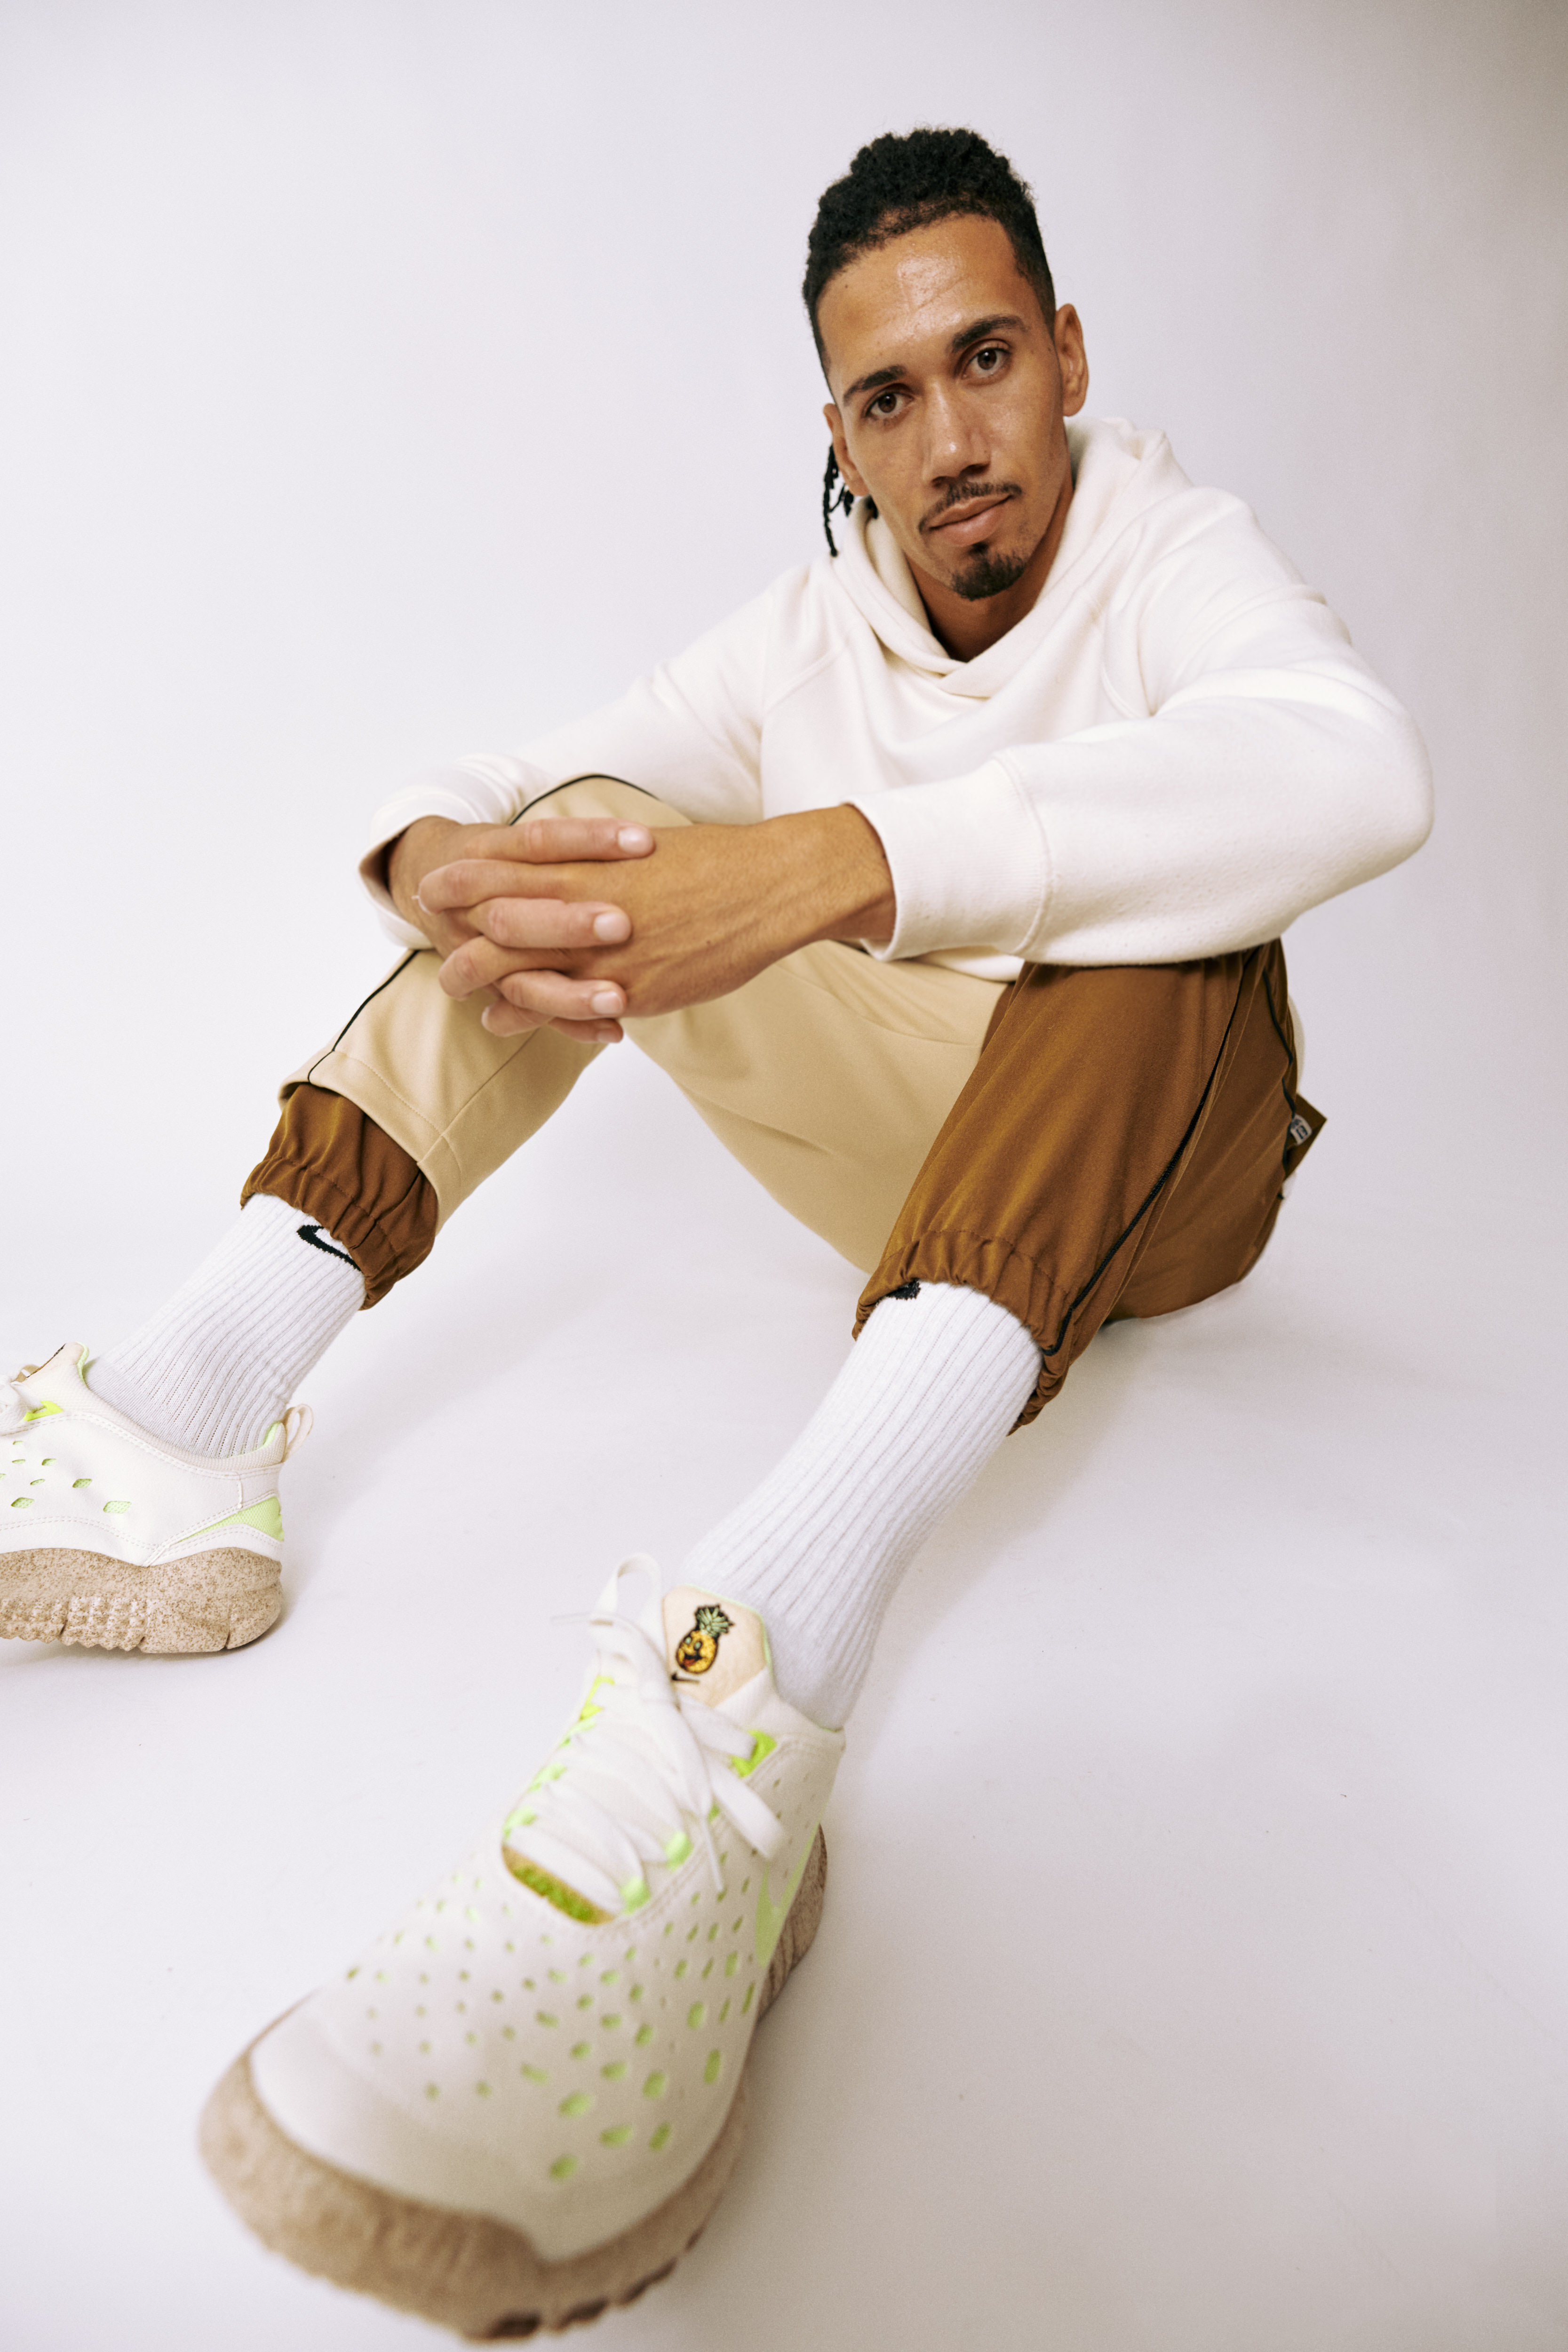 Footballer Chris Smalling wearing a pair of Nike sneakers from the Happy Pineapple Collection, which used pineapple leaves based Pinatex as a replacement to leather throughout the collection.